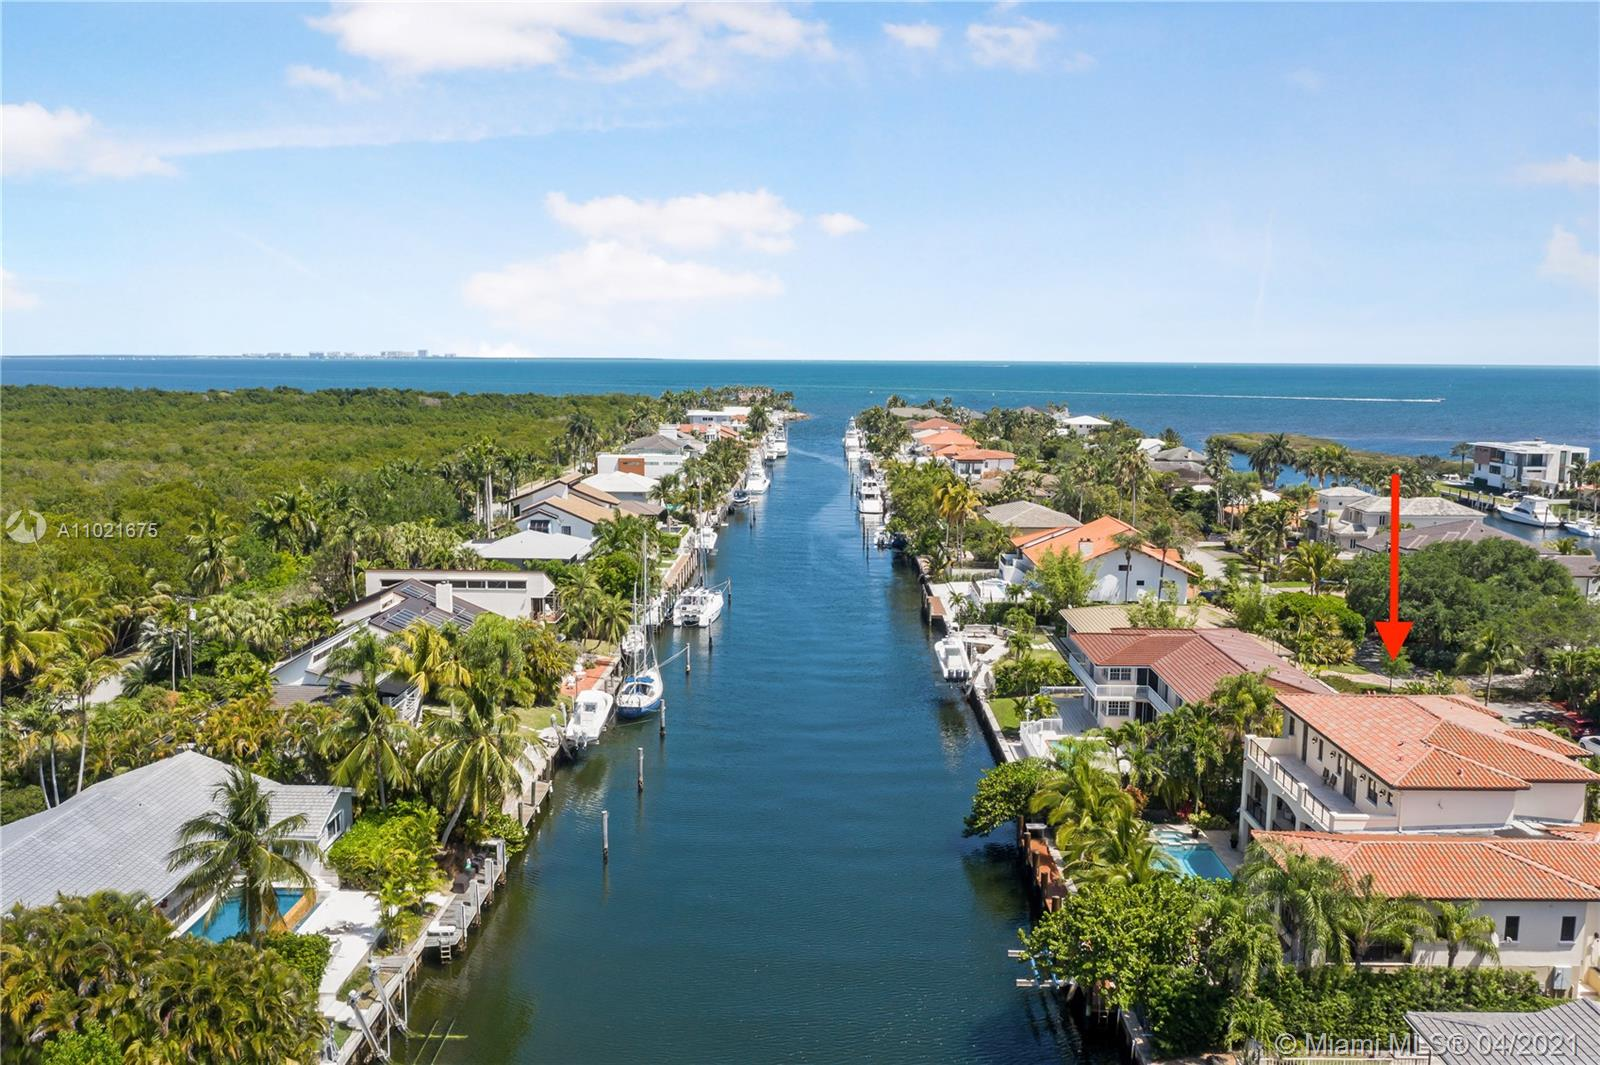 """Welcome to Boater's Paradise! This elegant waterfront home in the exclusive """"Gables by the Sea"""" gated community will bring you peace, serenity and wonderful outdoor living space that will feel like a vacation every day.  Enjoy a relaxing boating lifestyle with a 75-foot private dock and a boat lift NO bridges just a few minutes sailing to Biscayne Bay. This is an ultimate endless entertainment home with a Pool/Spa, BBQ area and Game/TV rooms surround by a well-manicured landscape yard. The home features the highest quality of marble finishes and hardwood floors, hurricane impact windows and doors and a complete video surveillance system. Spacious floor plans with 5 beds + 6.5 baths and a plenty of storage. Close proximity to best public and private schools, parks, restaurants and malls."""